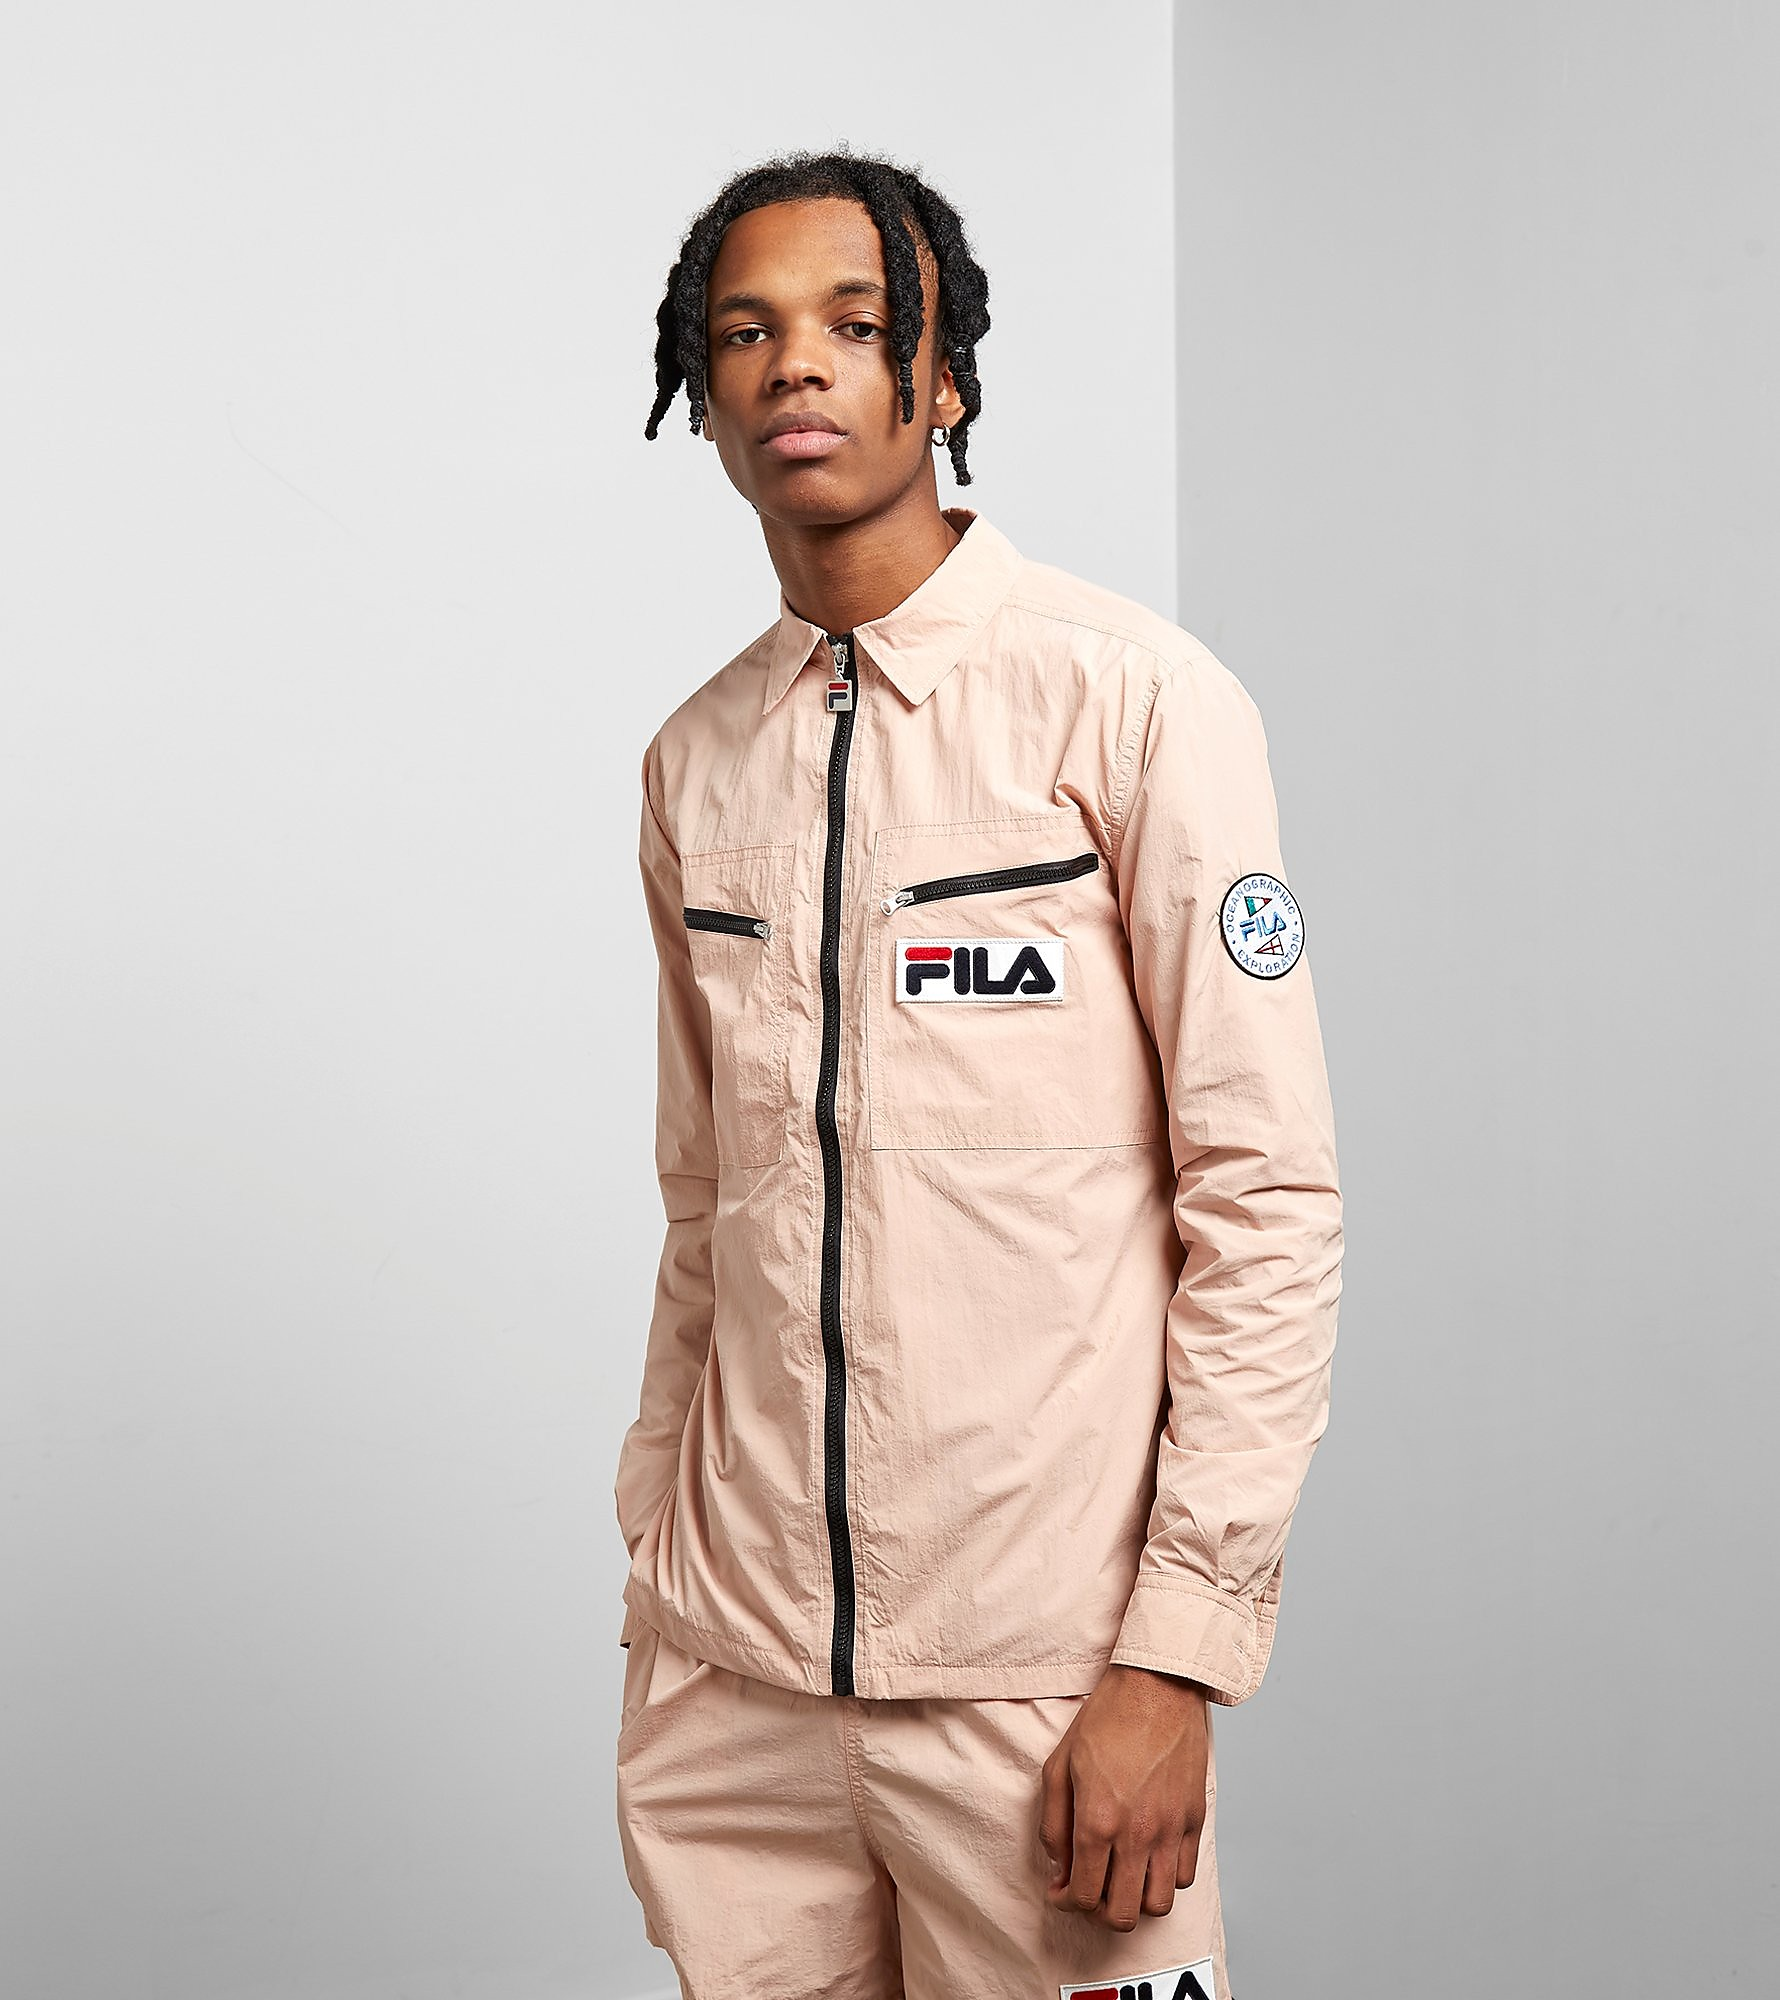 Fila Condor Shirt - size? Exclusive